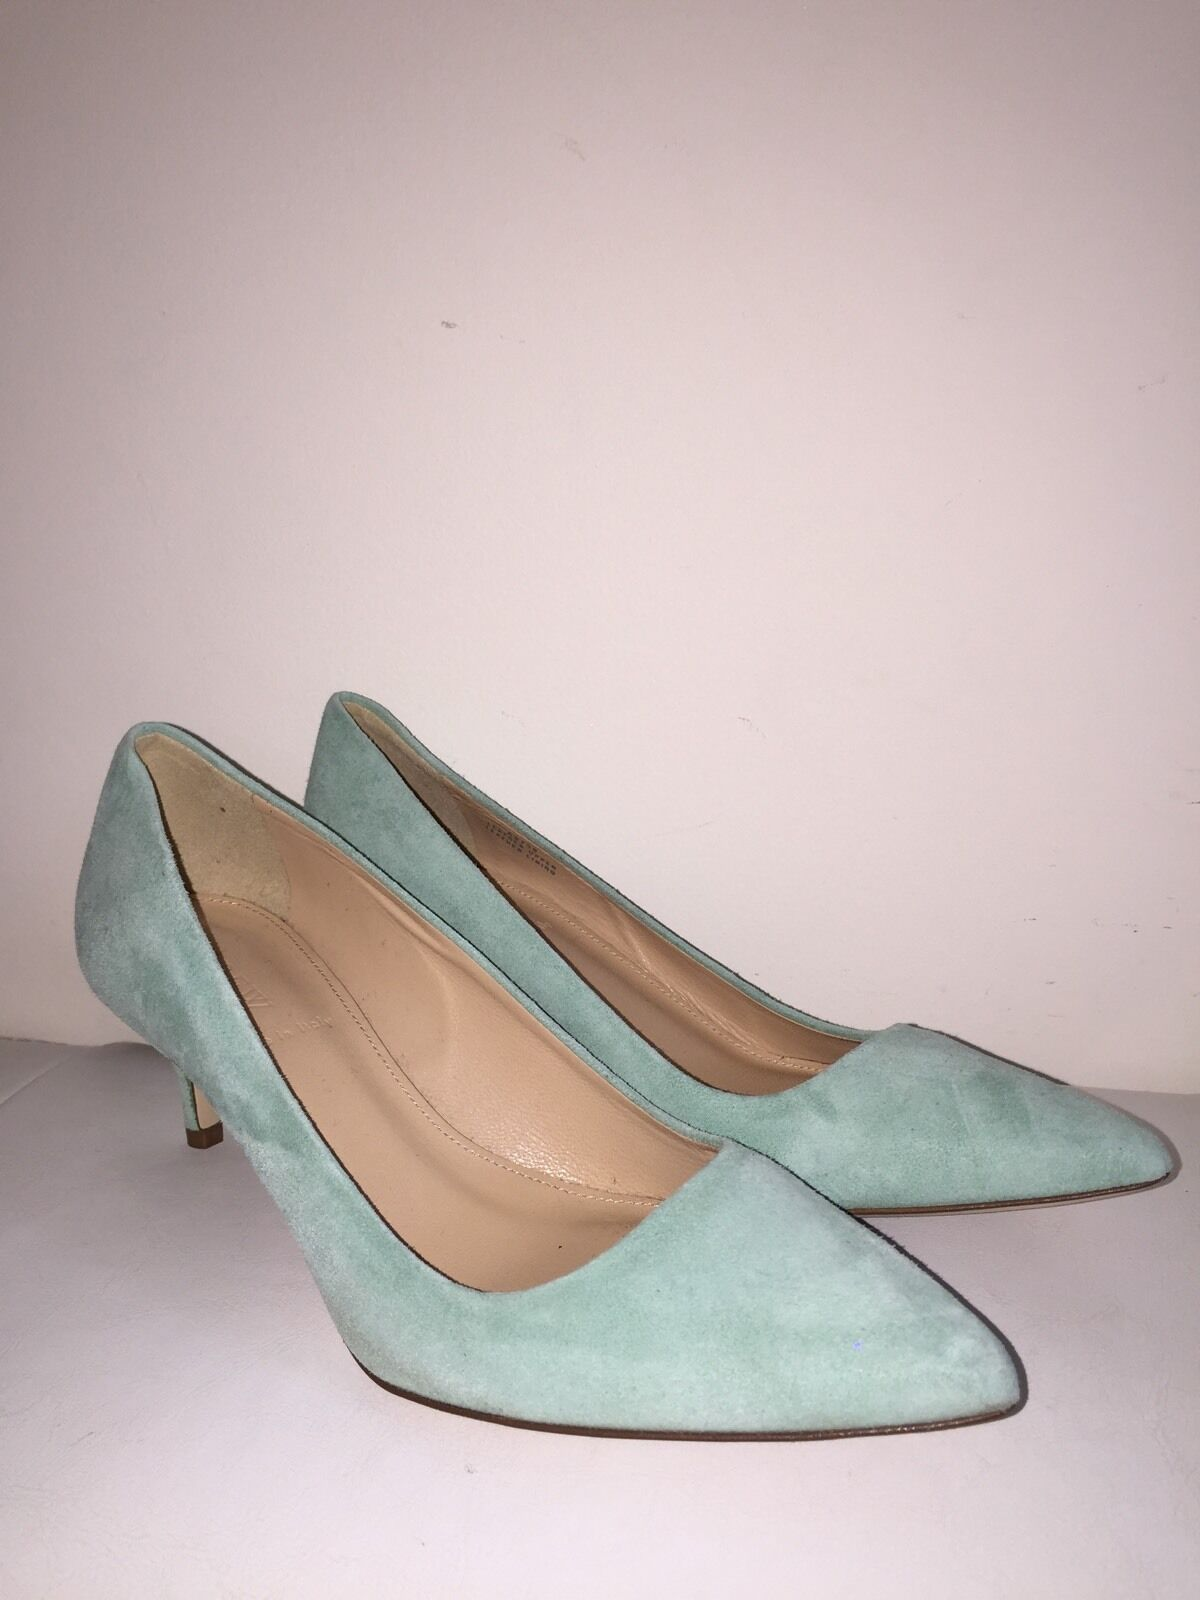 J Crew Dulci Suede Kitten Heels Schuhes green 198 rustic mint green Schuhes 6 a9758 NEW e0c1ba